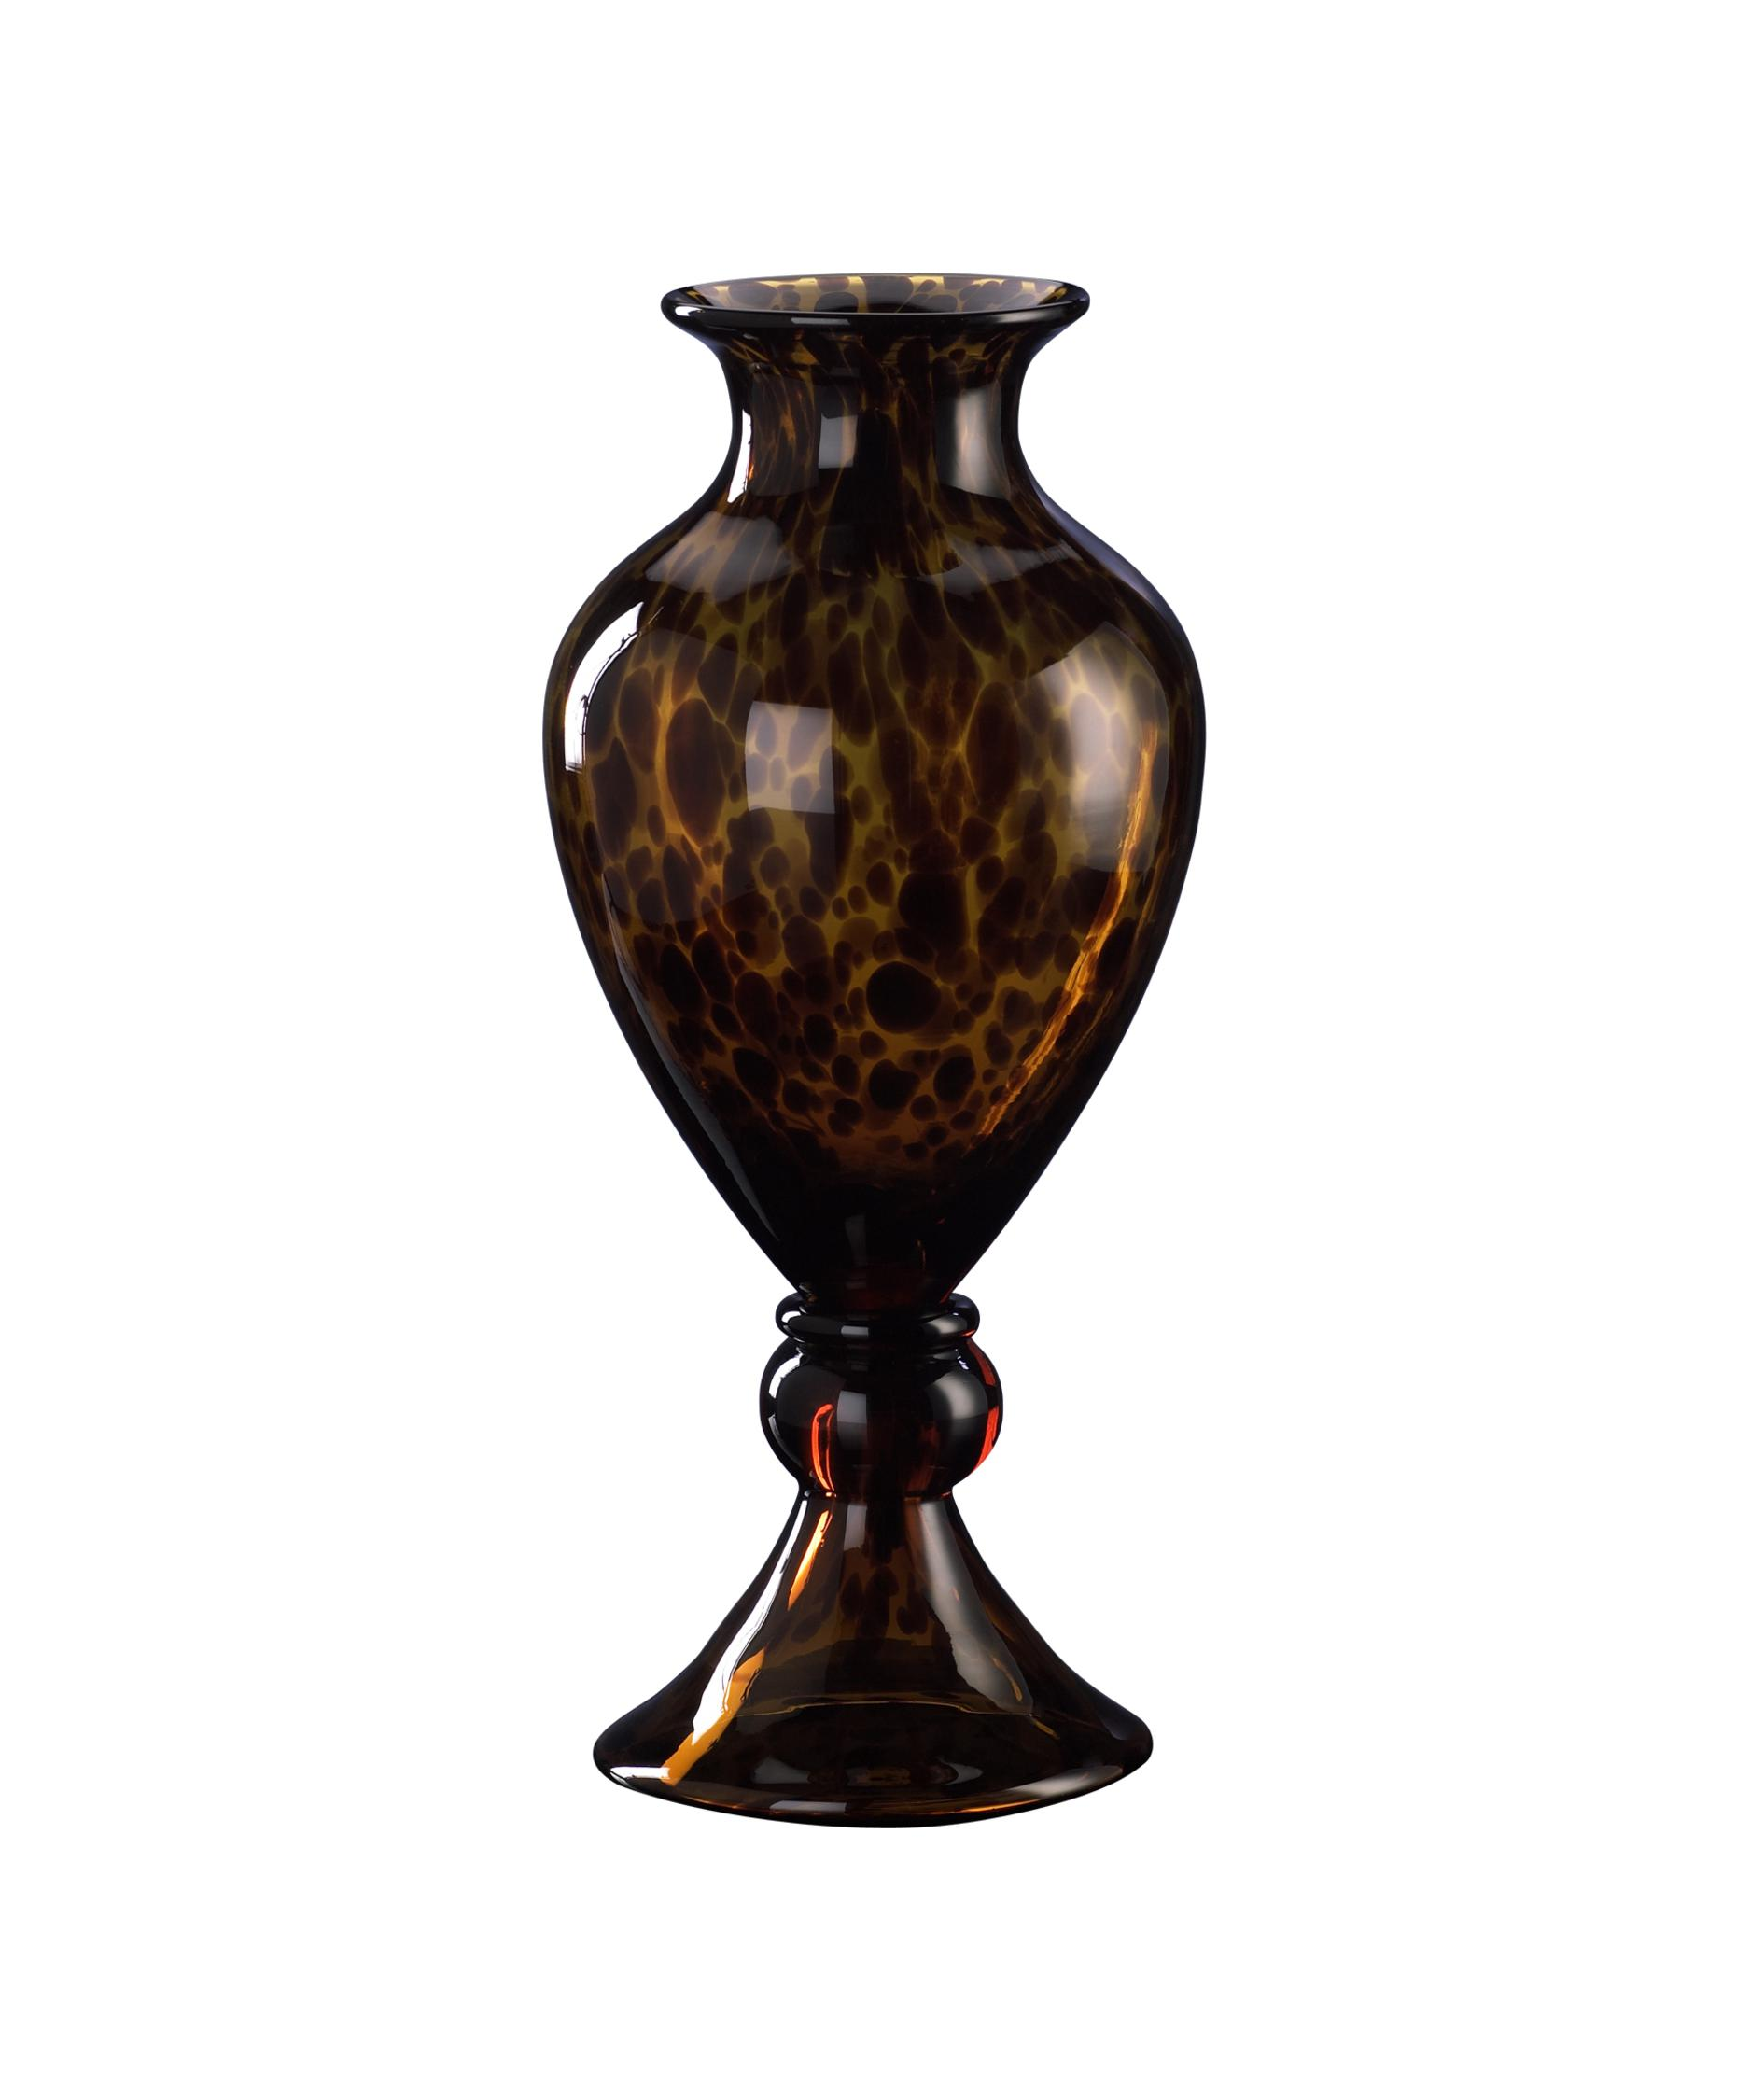 cyan design 00553 tortoise shell vase-urn | capitol lighting 1